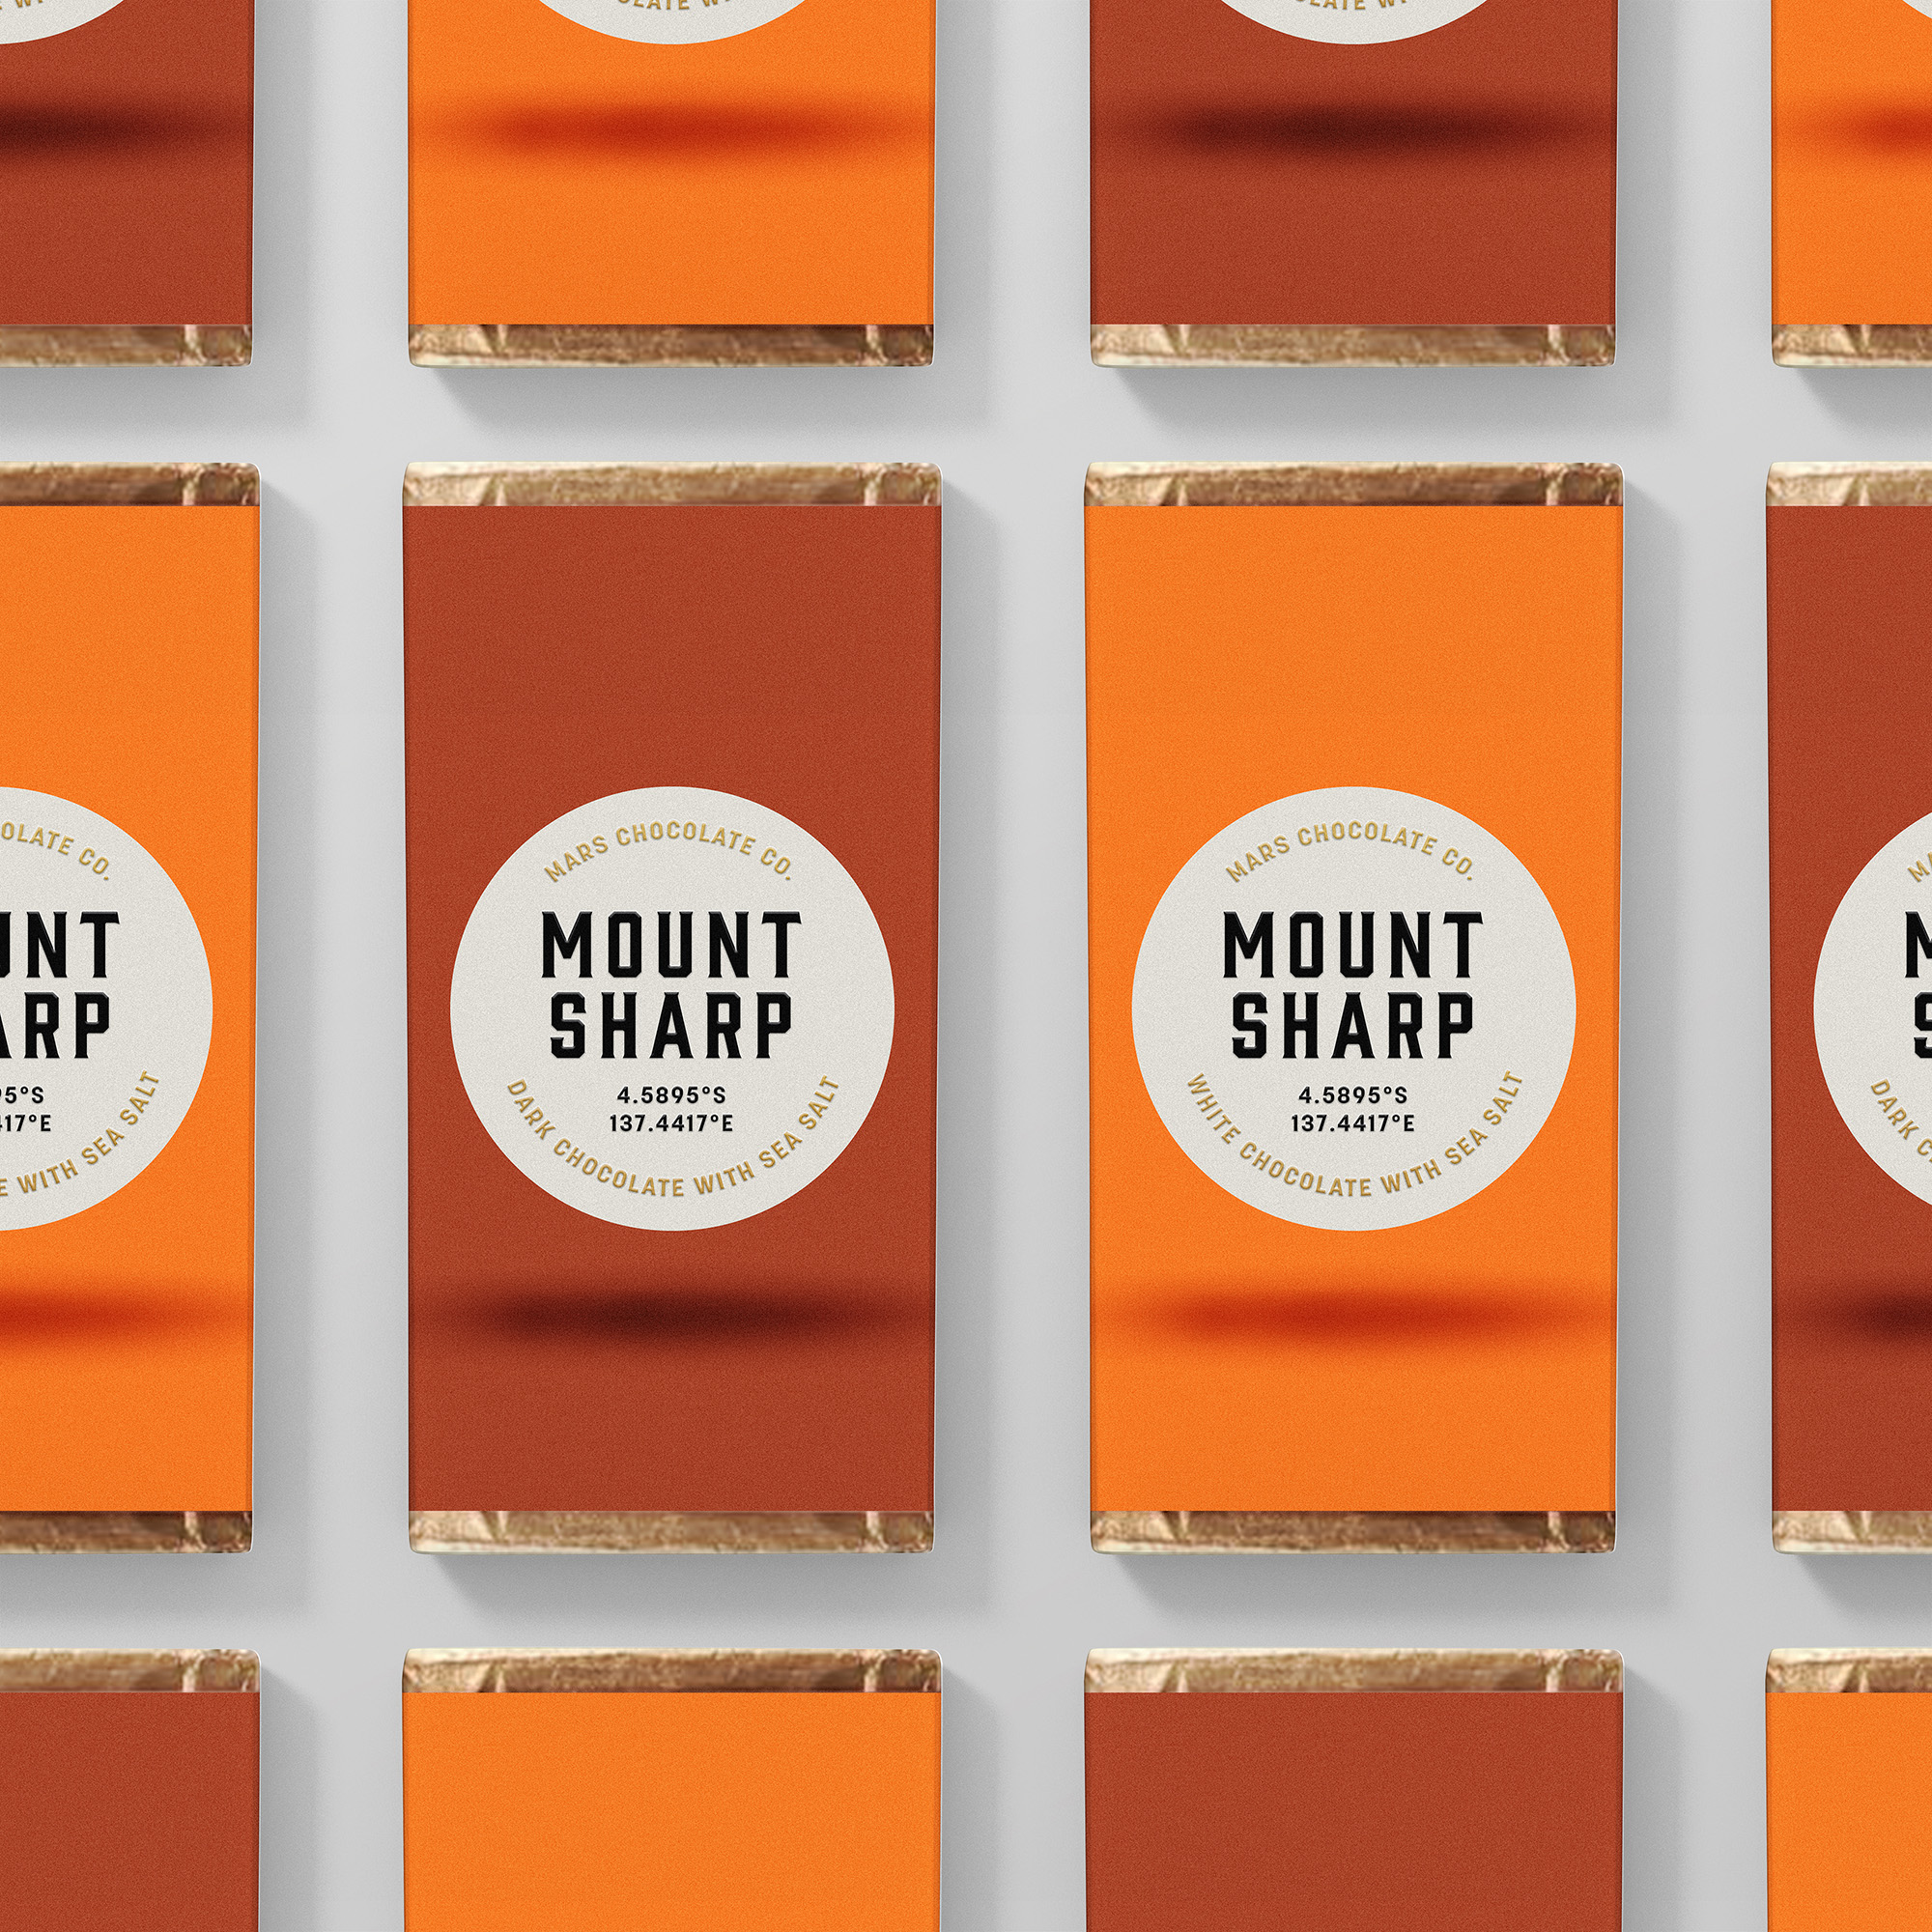 Mount Sharp chocolate bars packaging Franziska Böttcher